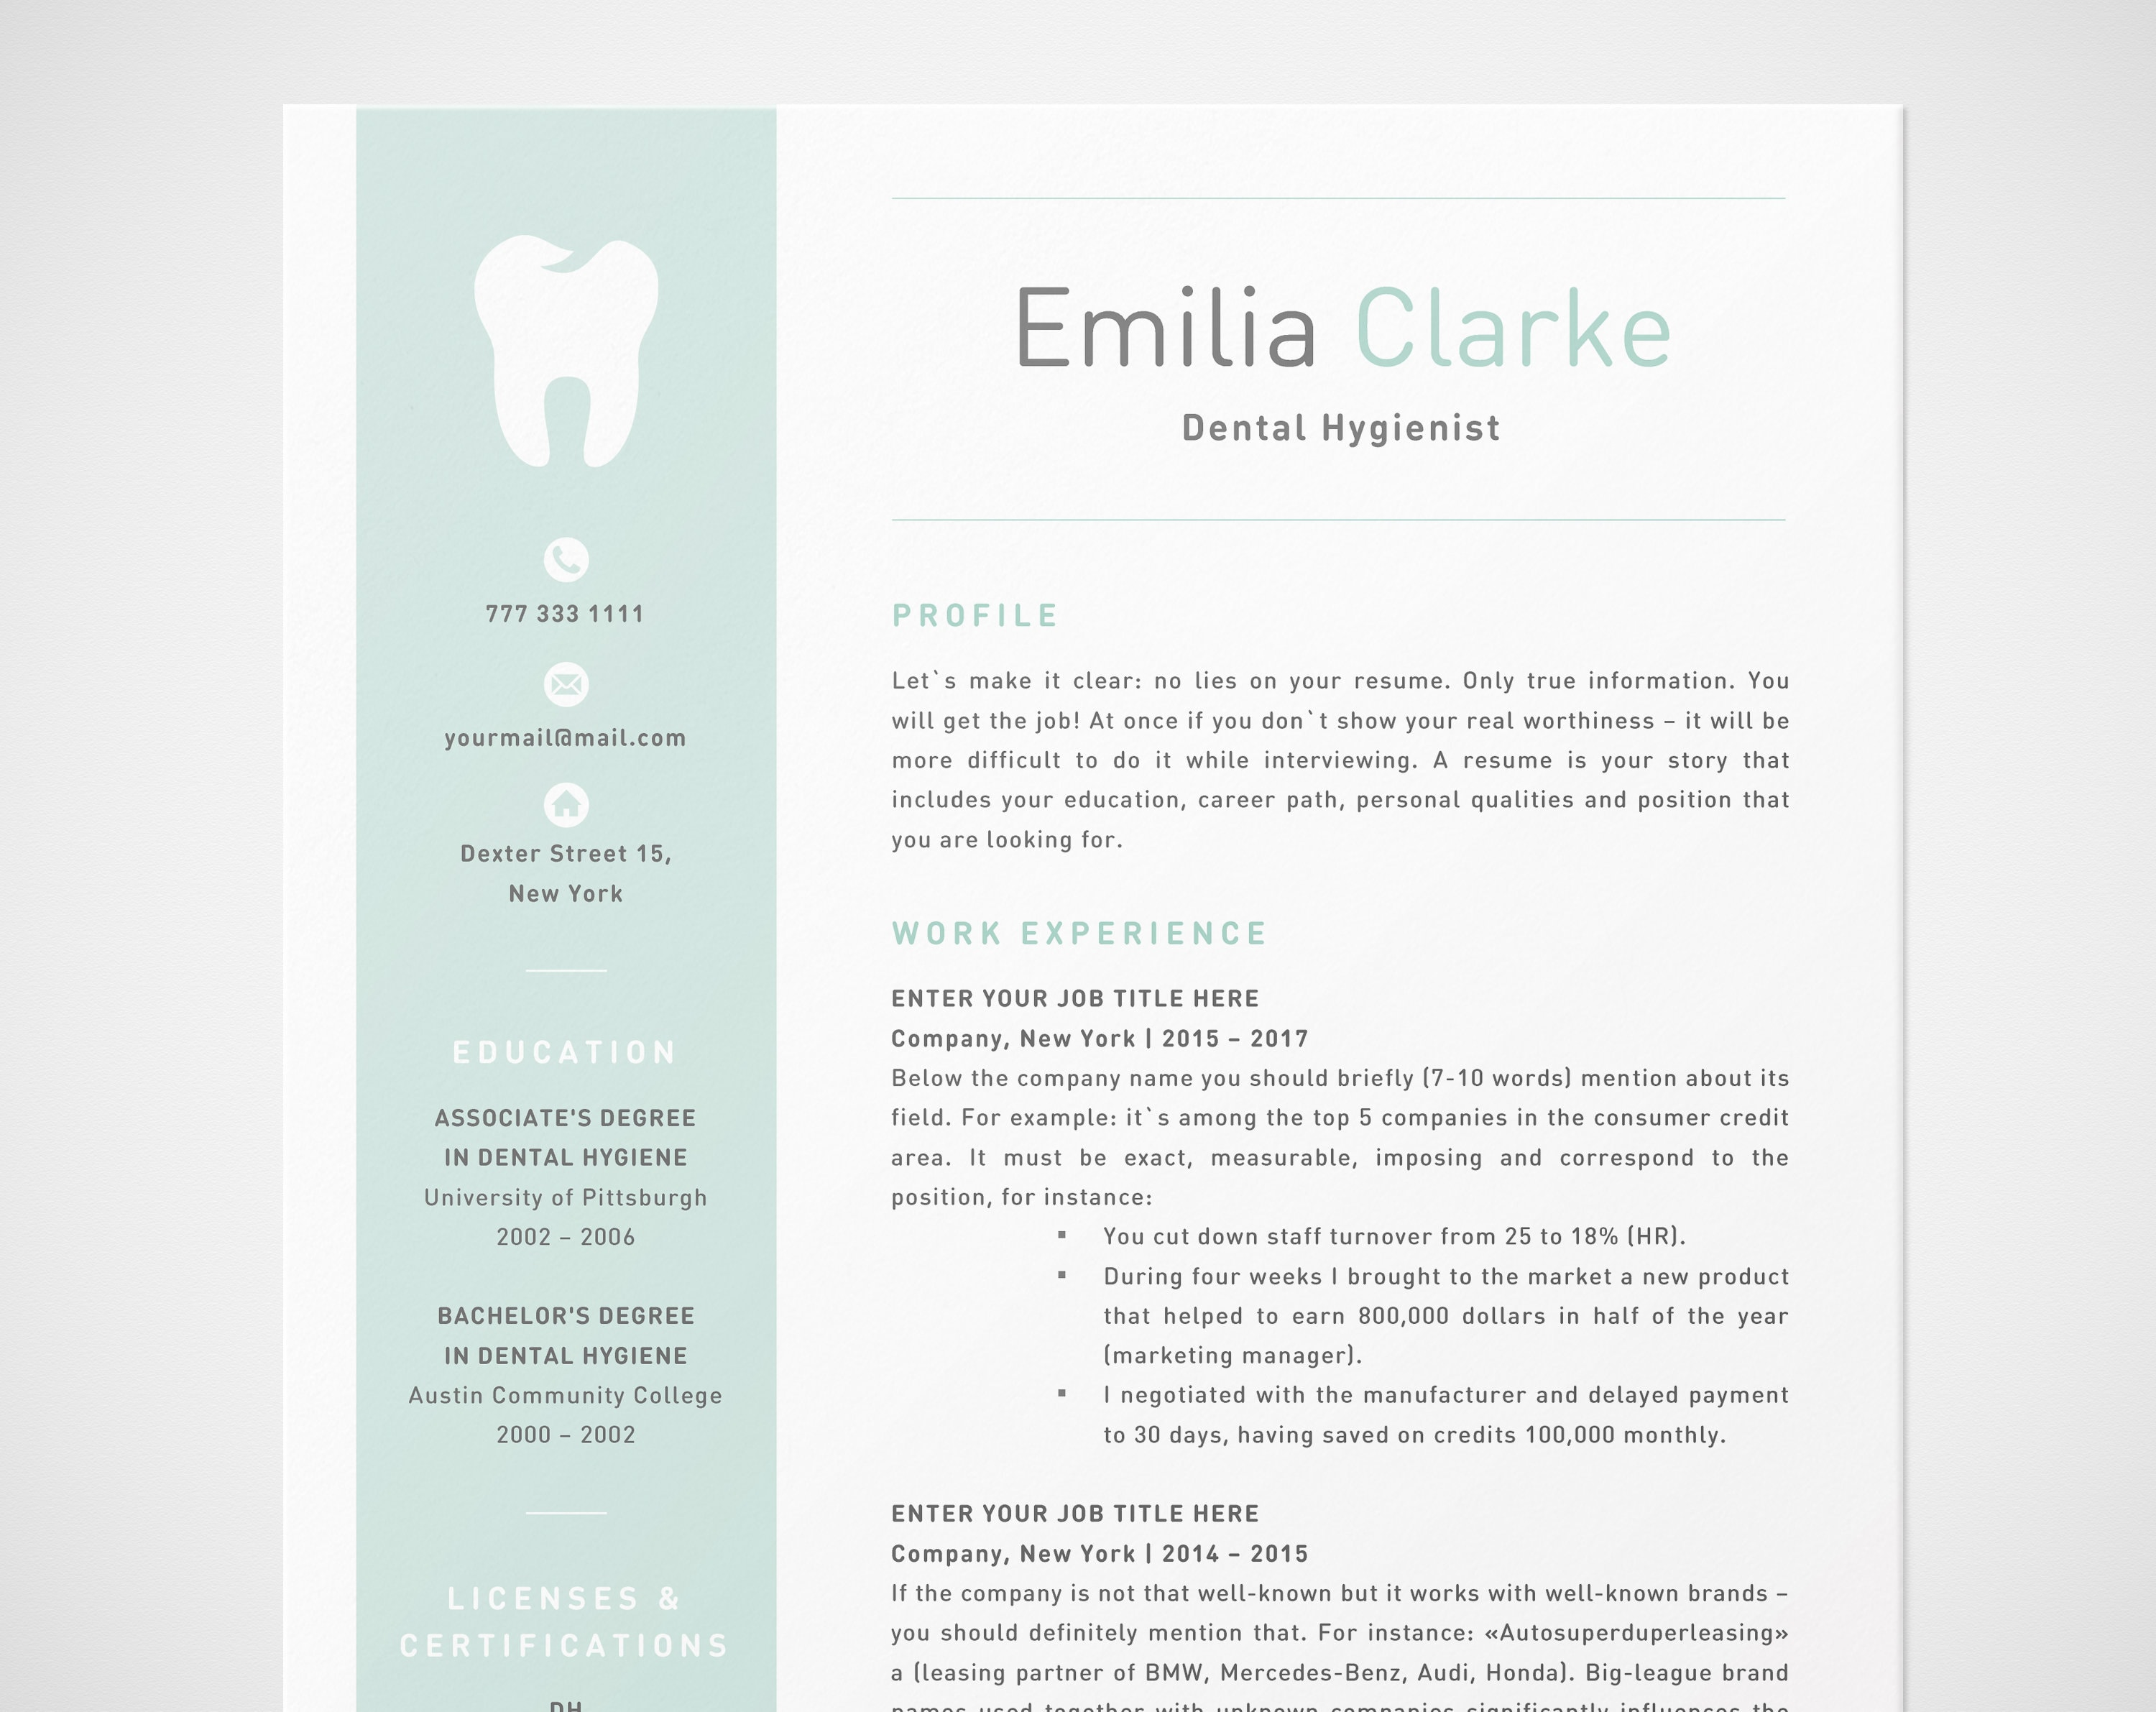 Dental Hygienist Resume Template For Word RDH Dentist CV Registered Assistant RDA Cda Orthodontic